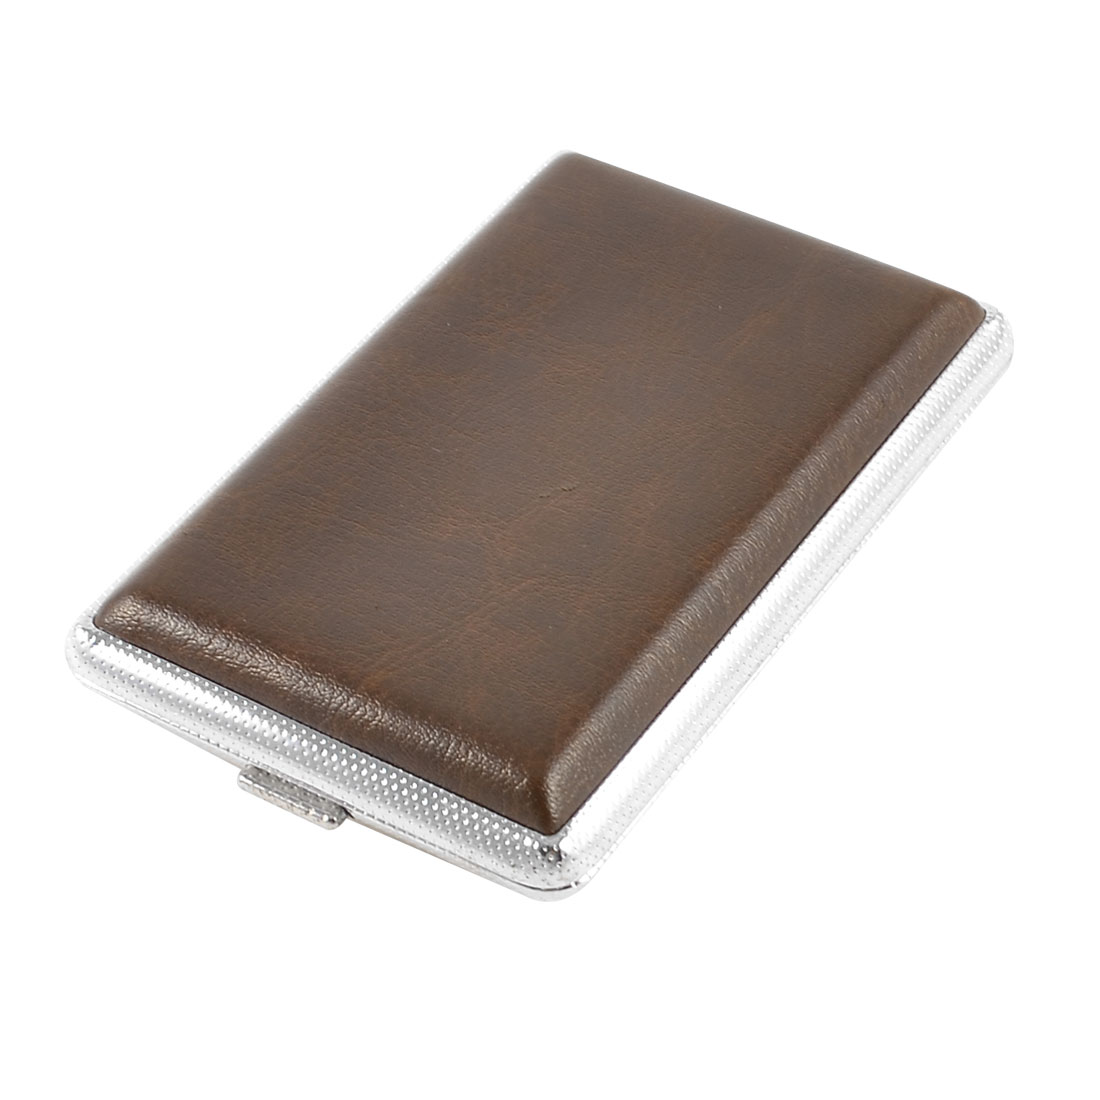 9.8 x 6cm Brown Faux Leather Wrapped Metal Cigarettes Tobacco Box Case